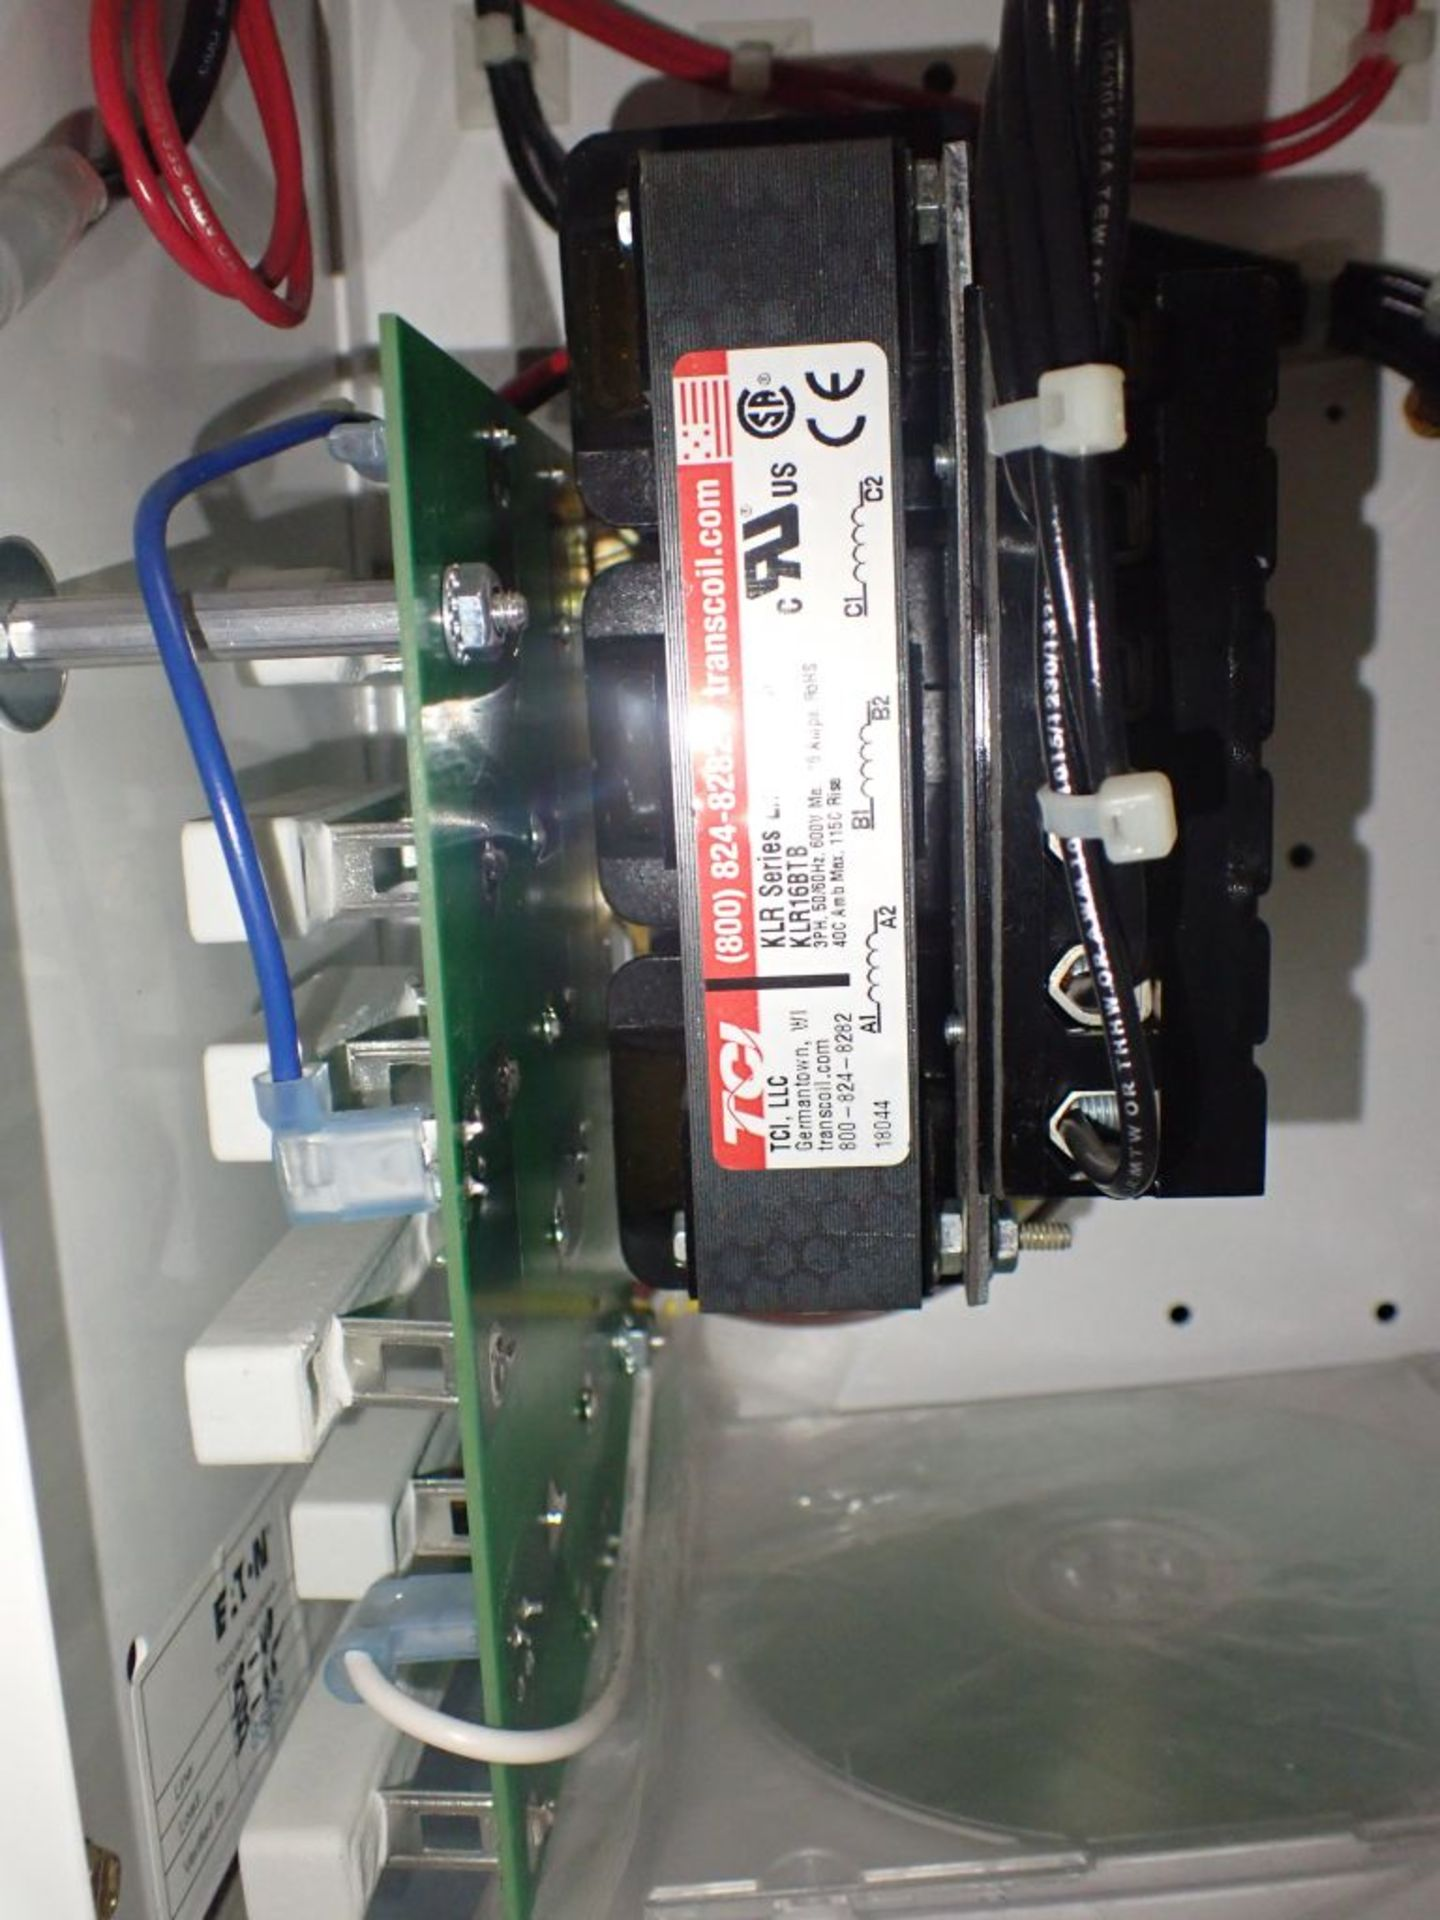 Eaton Freedom 2100 Series Motor Control Center | (2) F206-7A-10HP; (3) F206-15A-10HP; (1) FDRB-100A; - Image 13 of 87